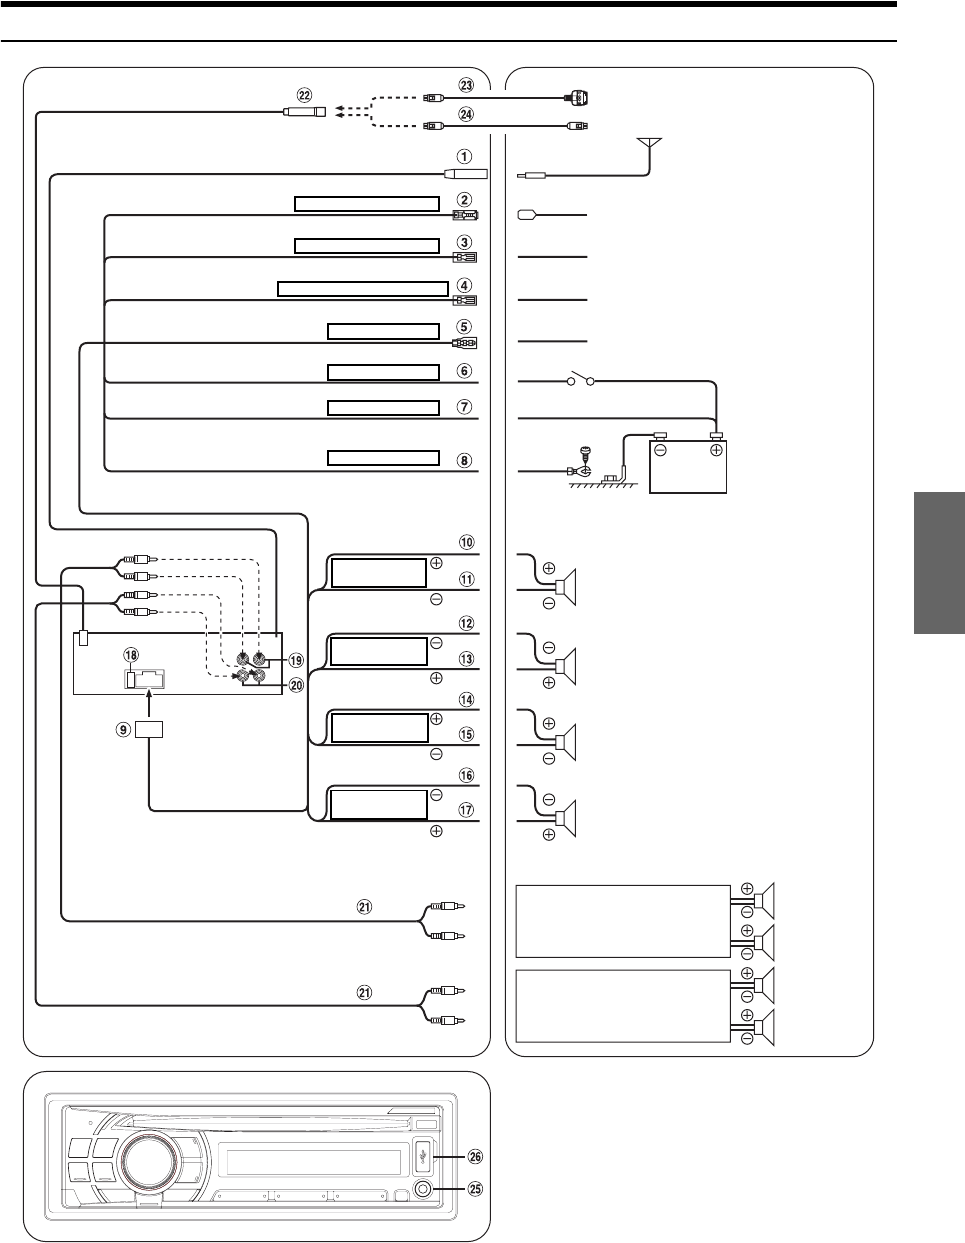 b11c451b 3cc1 41a1 925b 745f07e29109 bg1d?resize\\\\\\\=665%2C857 kenwood kdc 352u wiring diagram wiring diagrams on wiring diagram kenwood kdc mp445u wiring harness at gsmportal.co